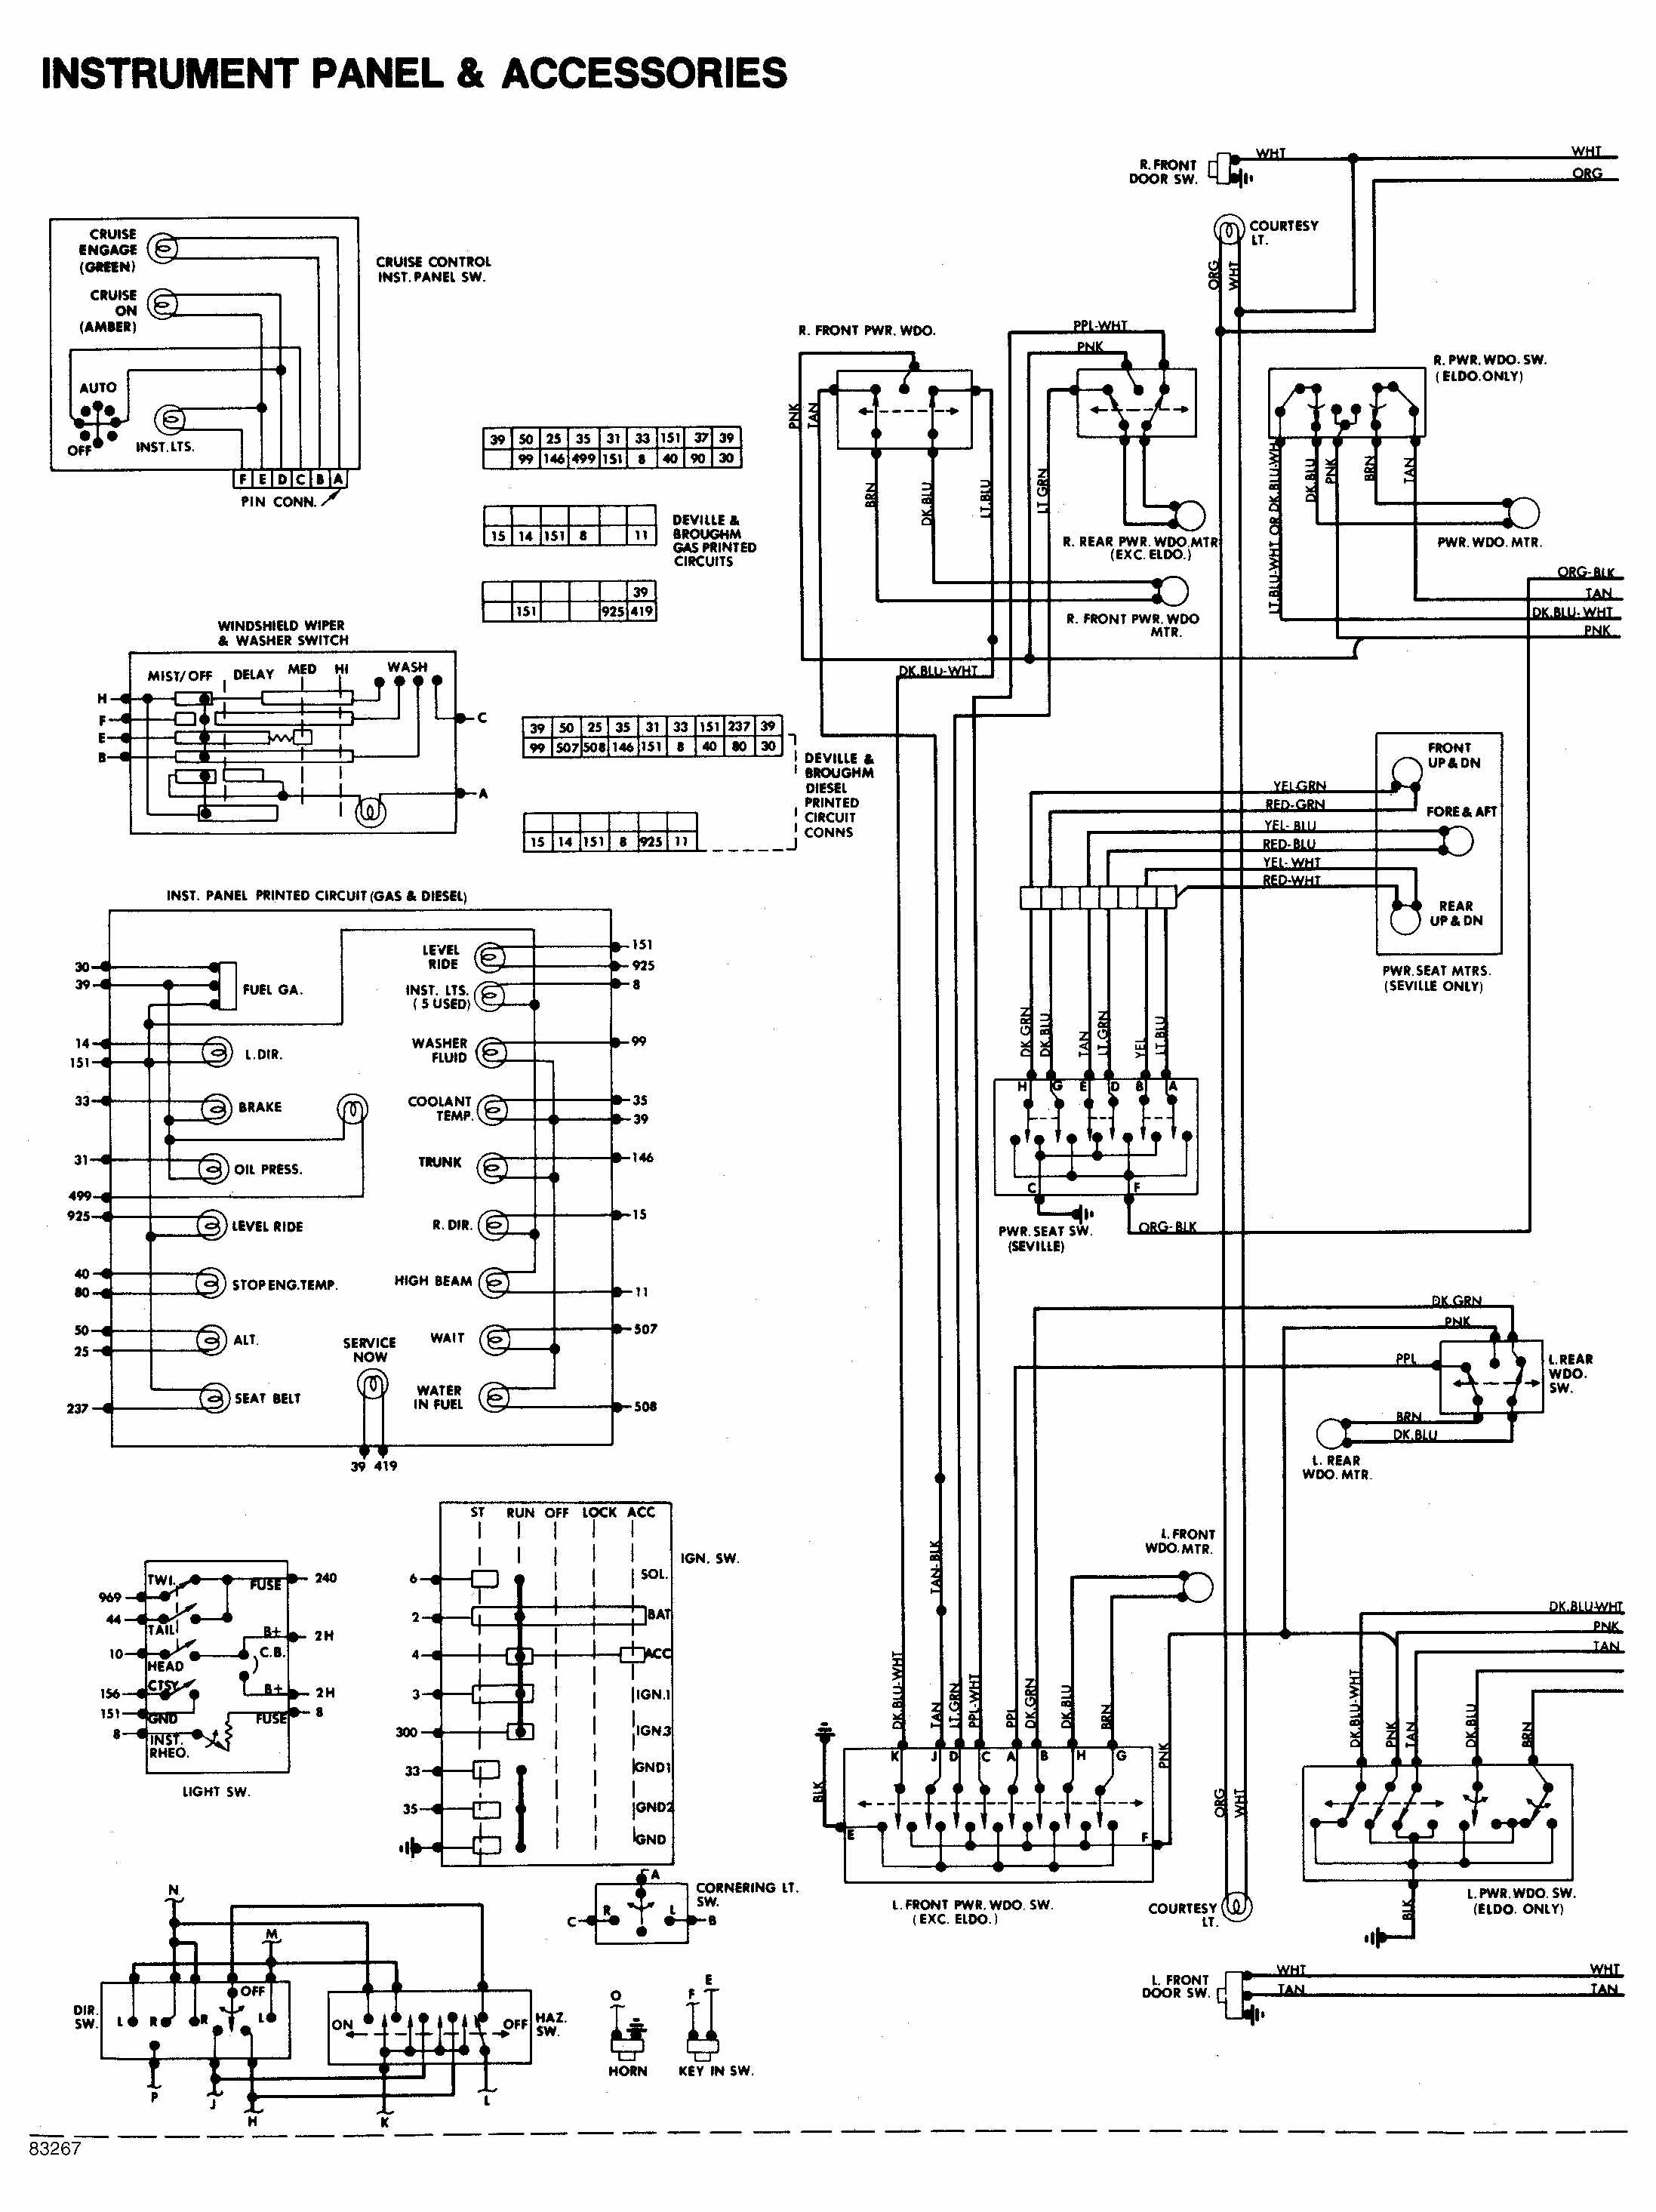 instrument panel and accessories wiring diagram of 1984 cadillac deville 1984 corvette wiring diagram free 1986 corvette wiring diagrams 2007 cadillac escalade radio wiring diagram at gsmportal.co